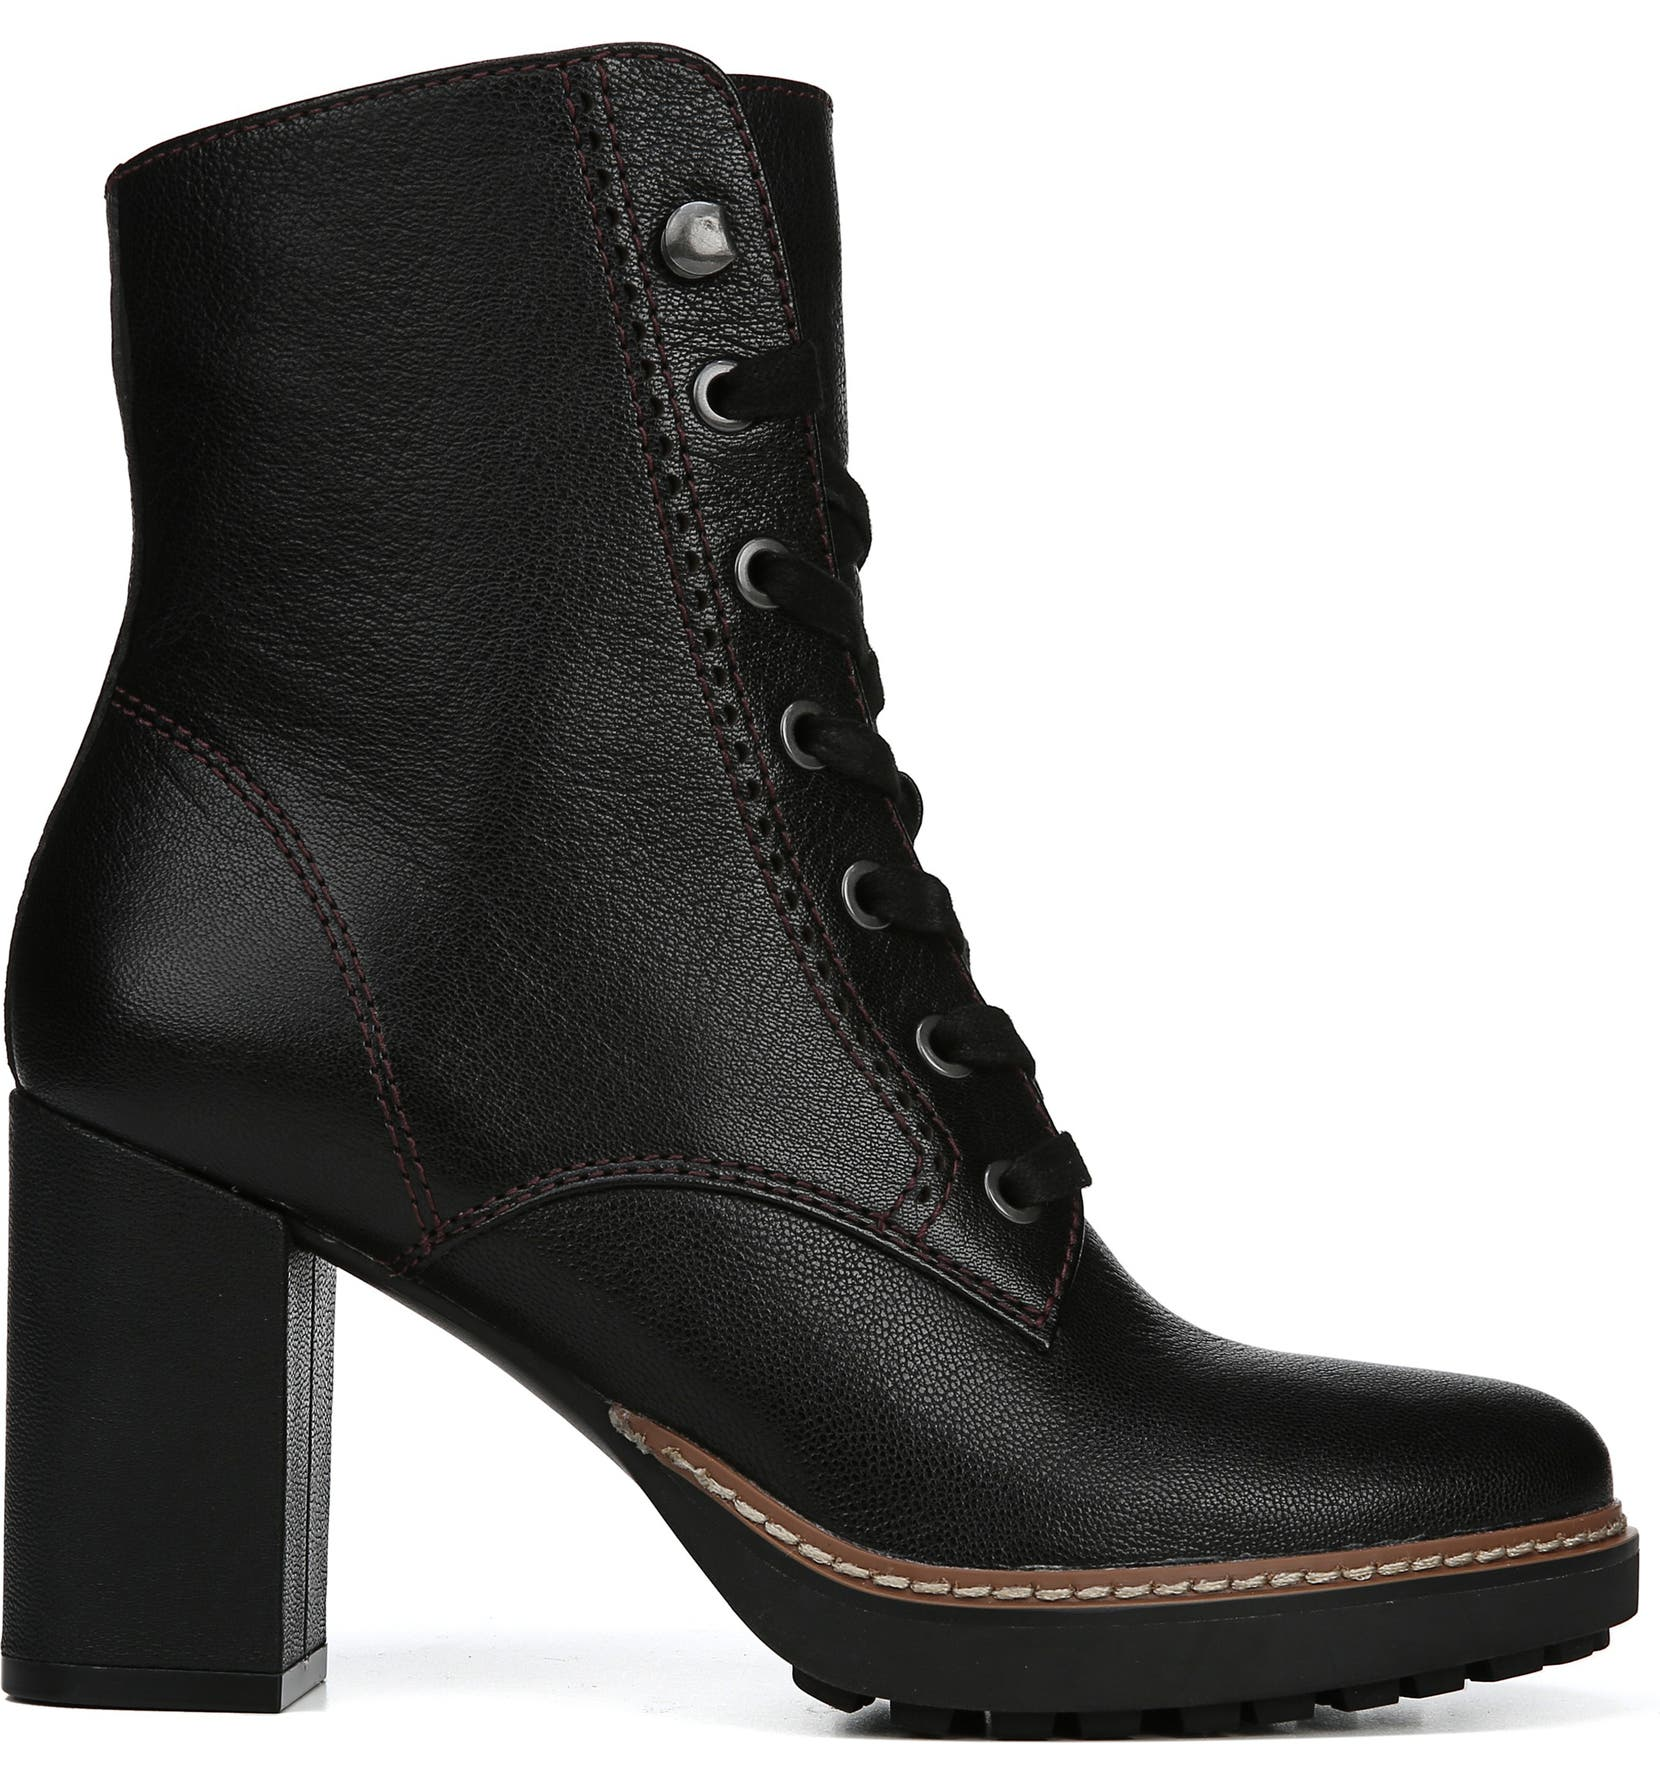 4f804baad52 Callie Lace-Up Boot